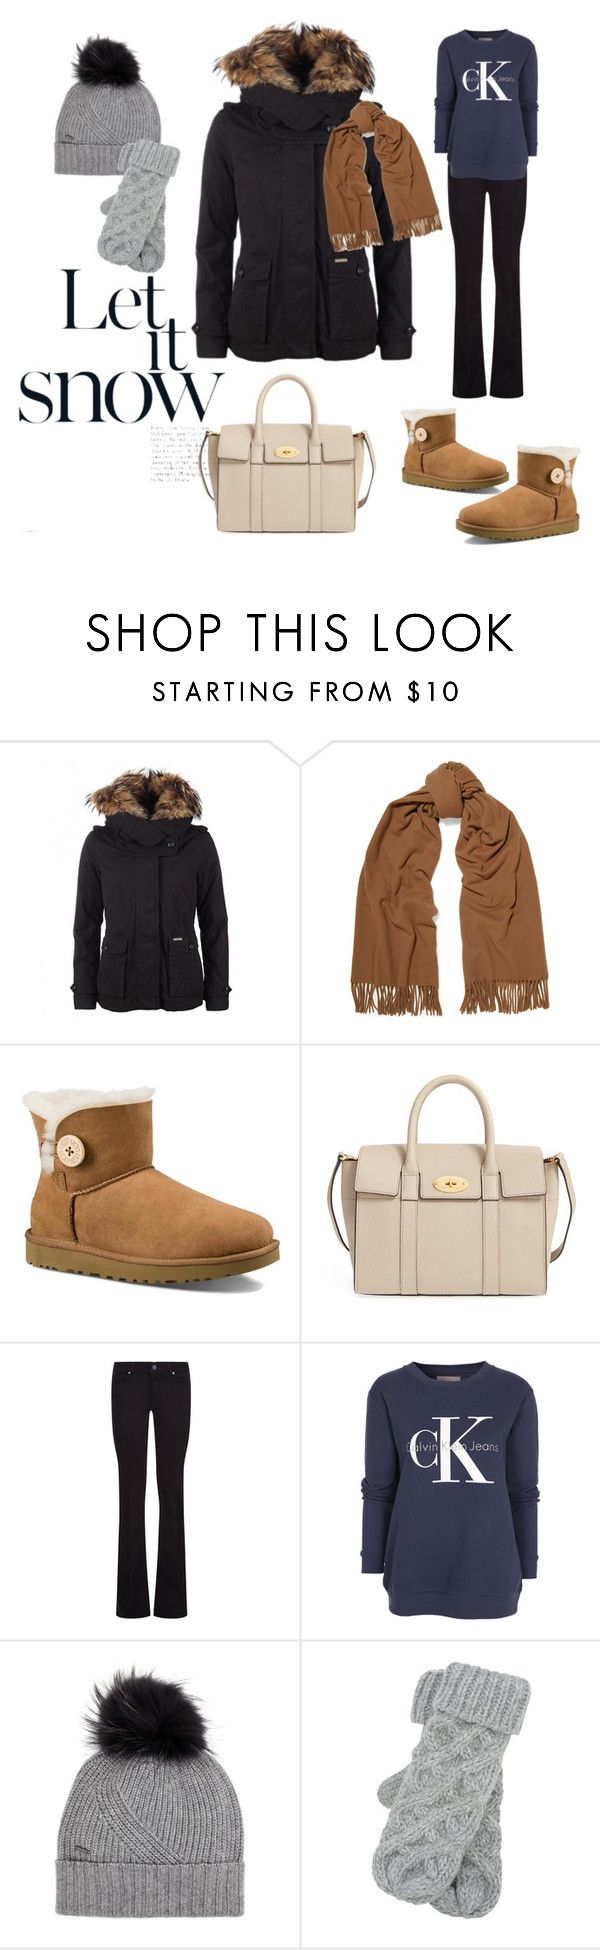 """""""Winter wonderland"""" by majahellstrom on Polyvore featuring Woolrich, Acne Studios, UGG Australia, Mulberry, Paige Denim, Calvin Klein and M&Co"""